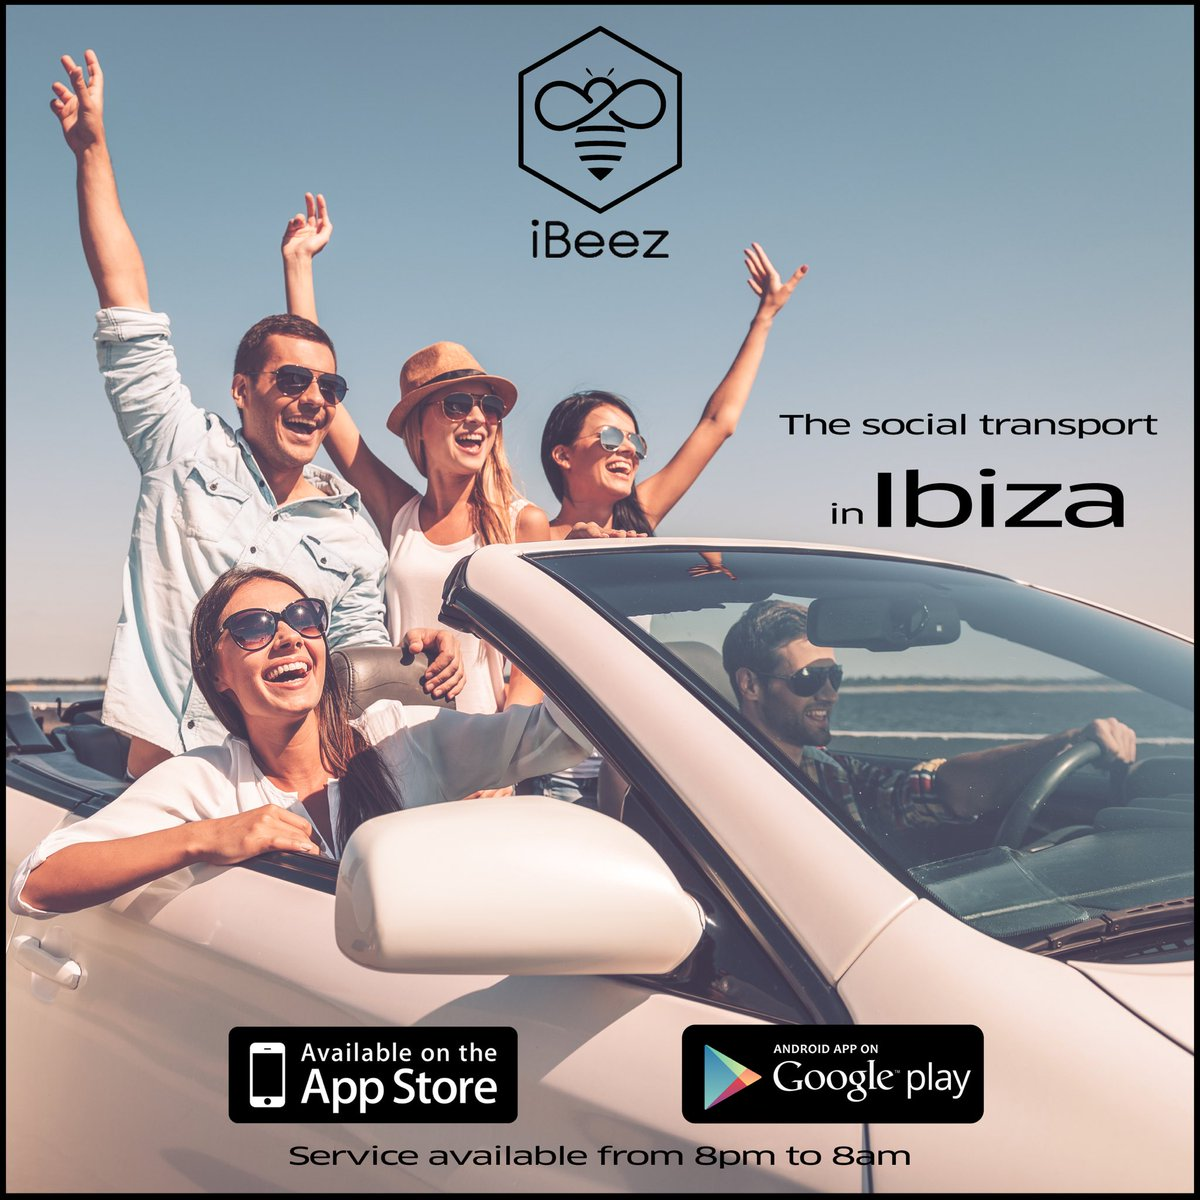 Ibiza this season ? 🌴  Don't forget to download our app available on Appstore & Playstore for find driver around you 🐝 👉 https://t.co/Urtwg44QaP  #iBeez #ibiza2018 https://t.co/qYT4bG4LqH